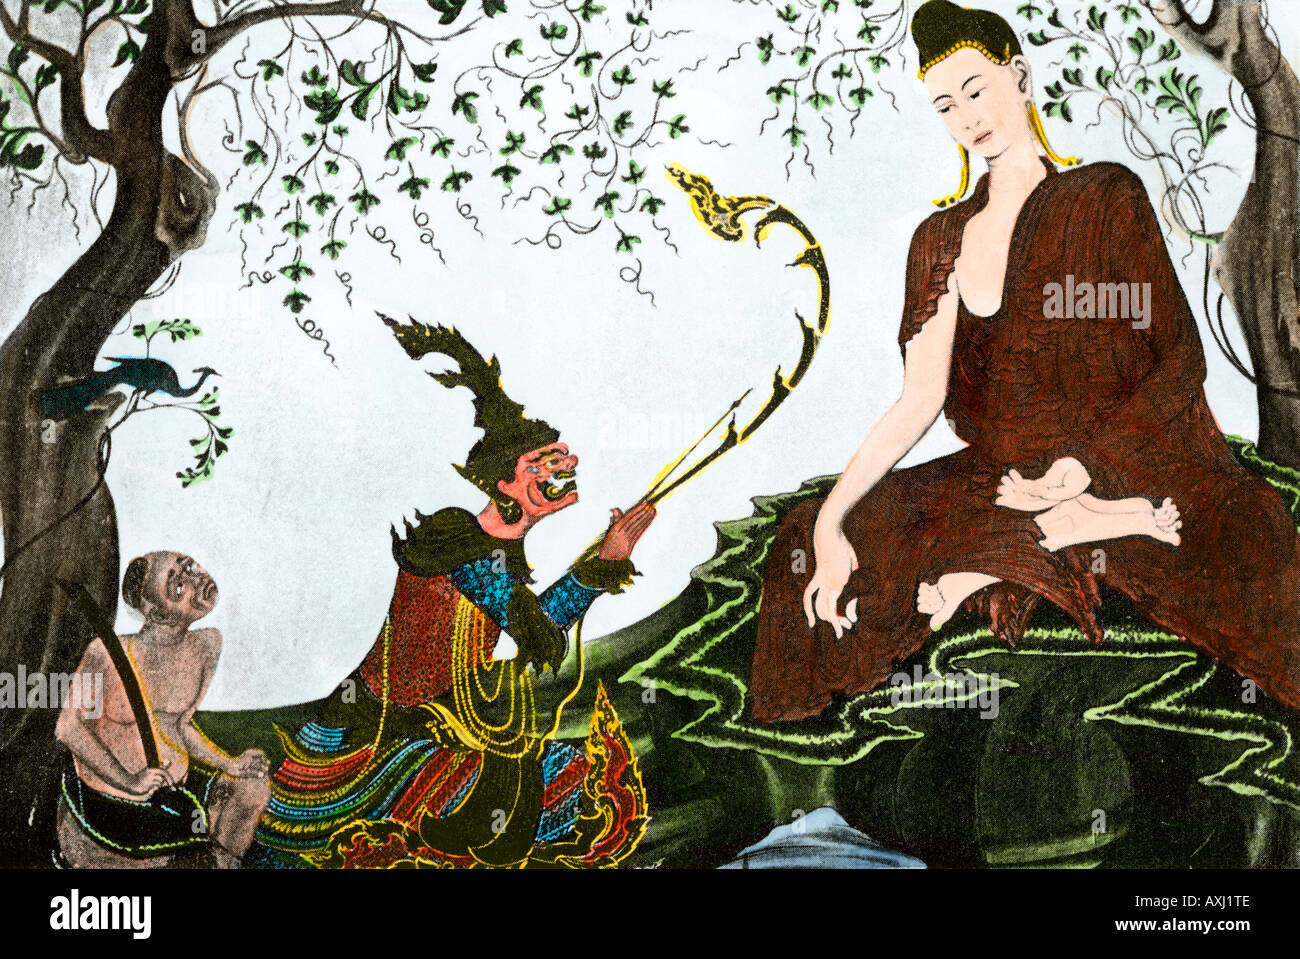 Siddhartha Gautama the founder of Buddhism. Hand-colored woodcut - Stock Image